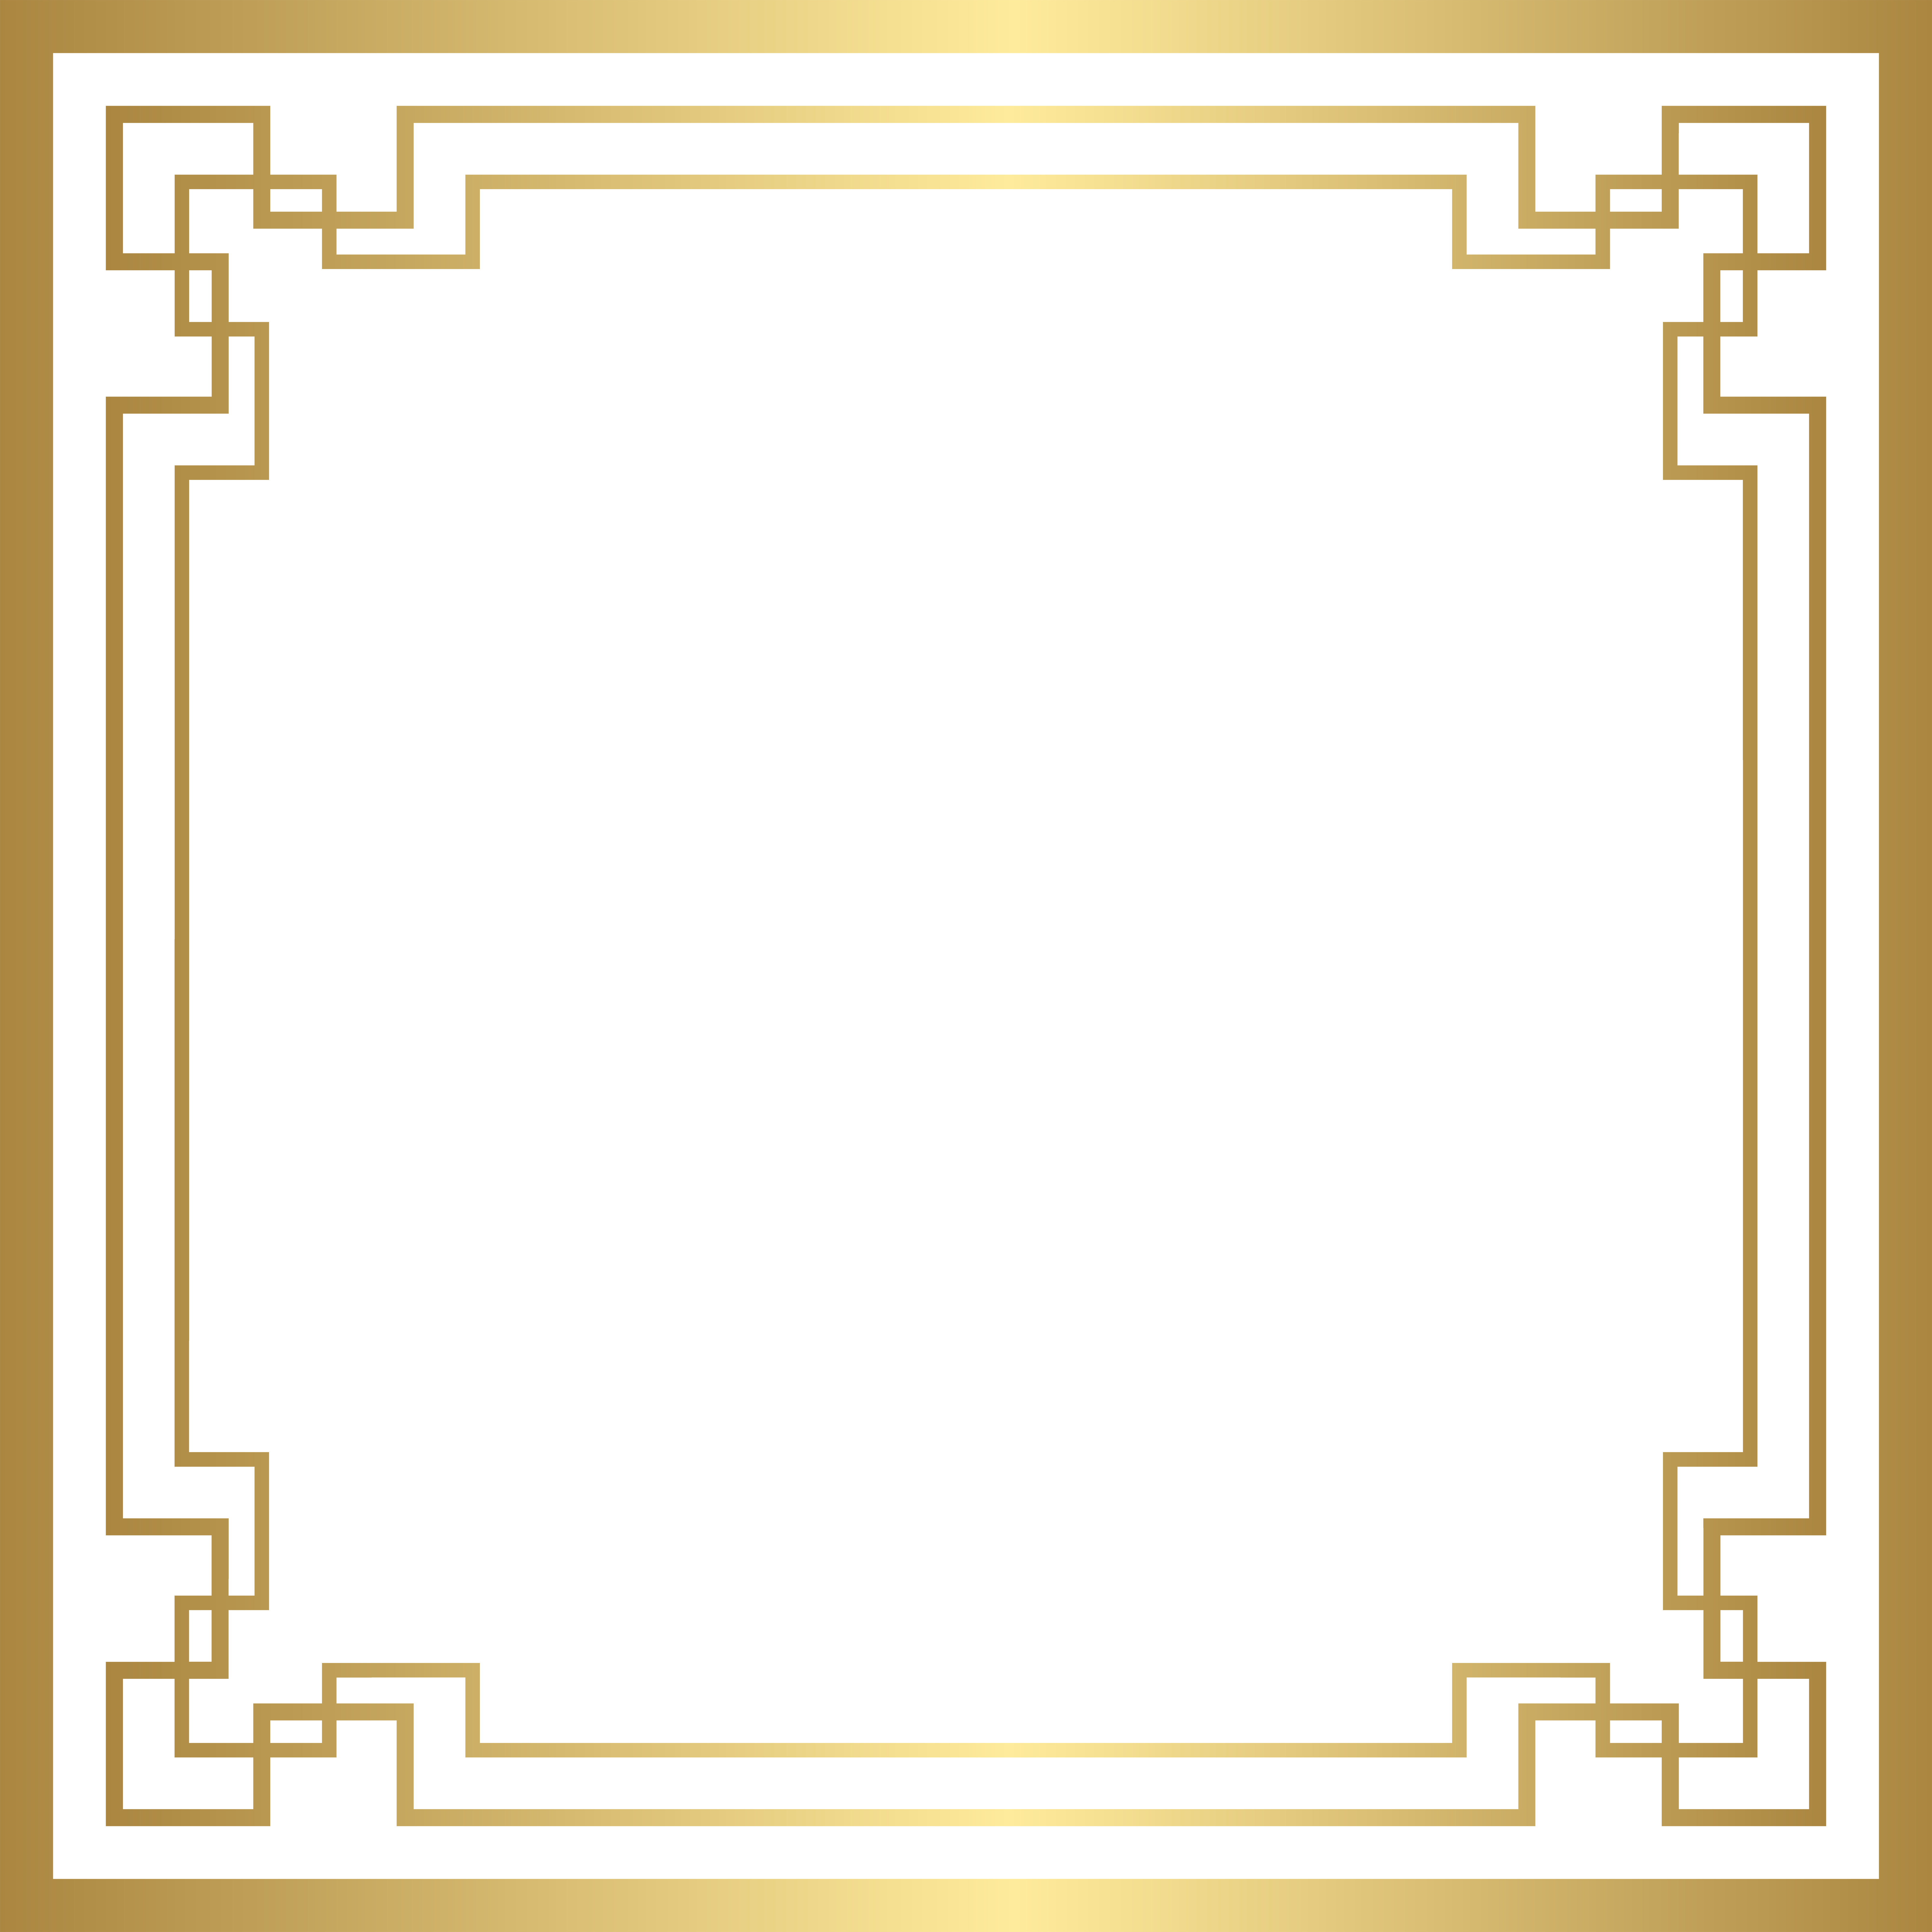 Border Frame Deco Art Gold Free Transparent Image Hd Art Deco Borders Clip Art Borders Free Art